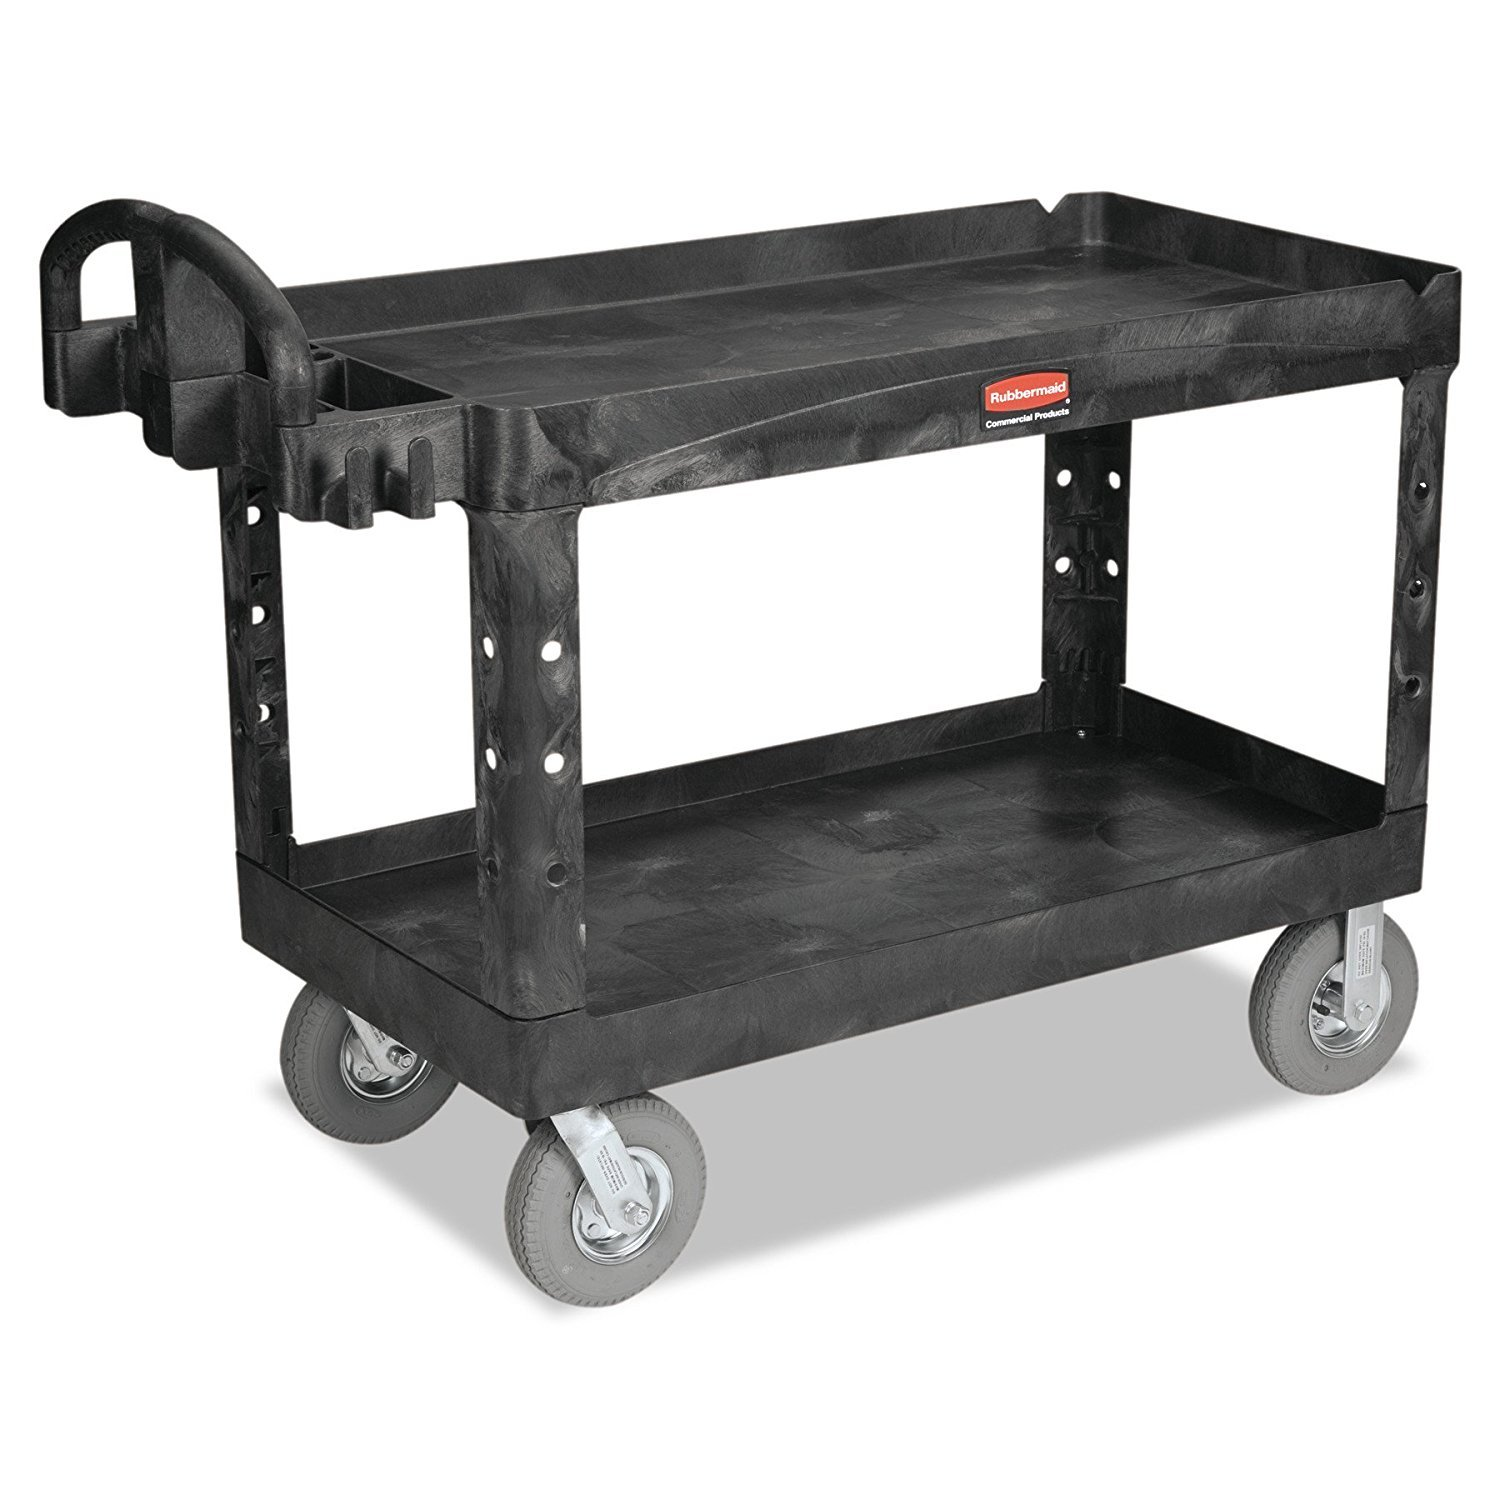 Rubbermaid Commercial Heavy-Duty 2- Shelf Utility Cart, Ergo Handle, Lipped Shelves, Large, Black FG454600BLA